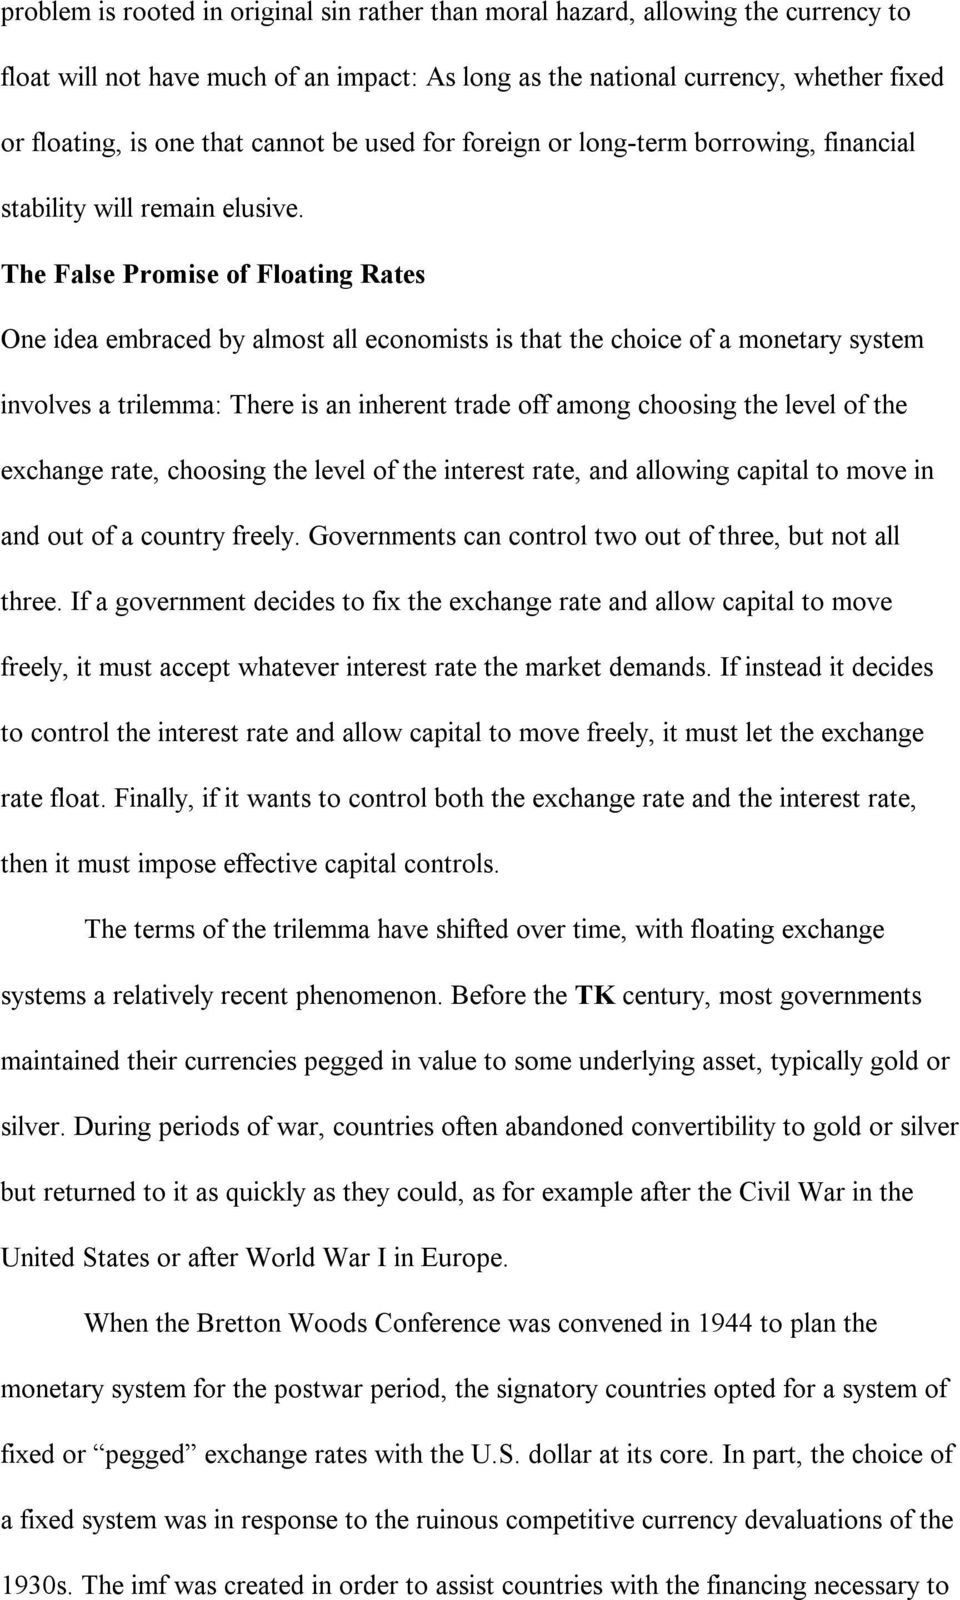 The False Promise of Floating Rates One idea embraced by almost all economists is that the choice of a monetary system involves a trilemma: There is an inherent trade off among choosing the level of